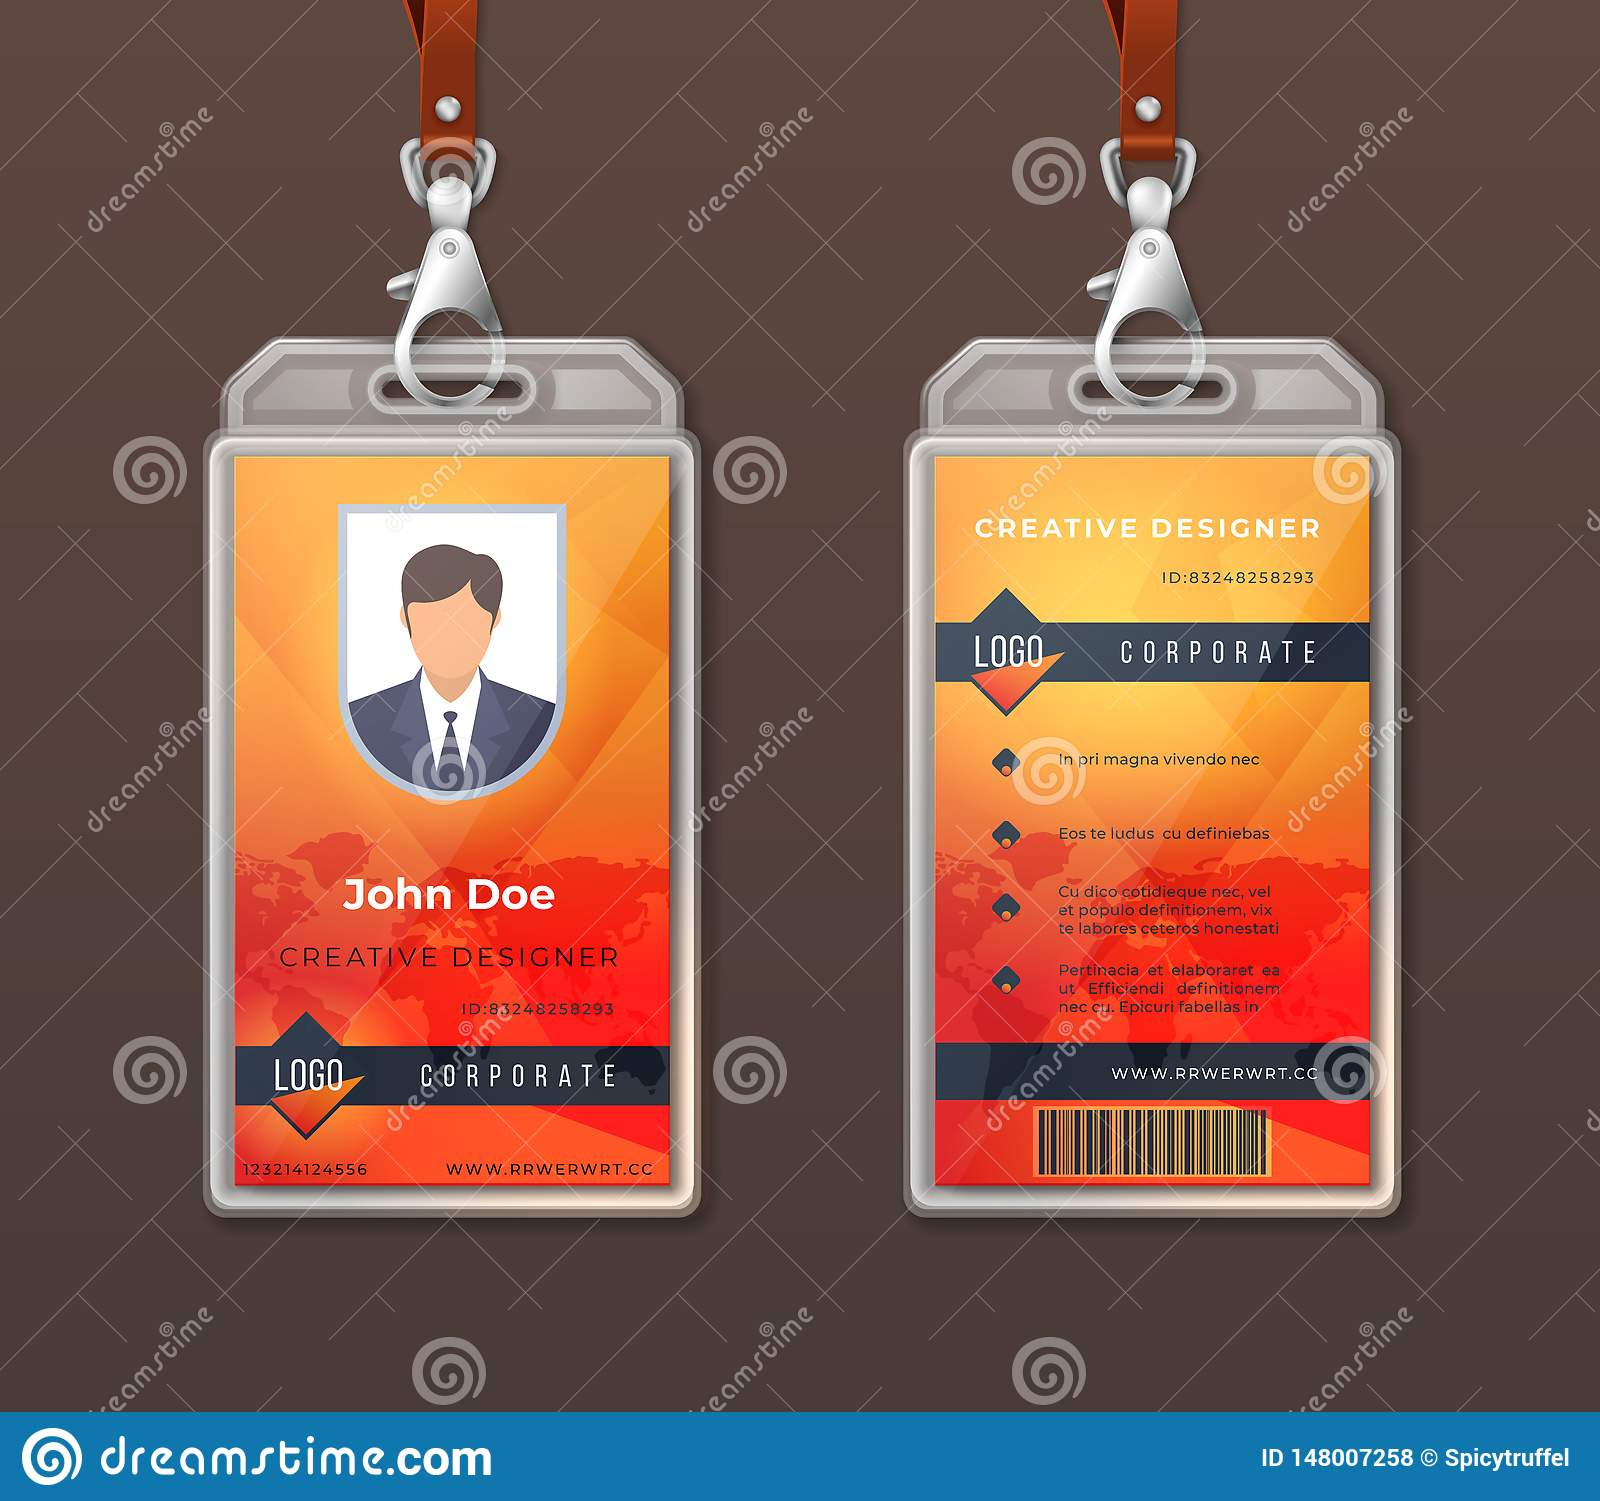 Employee Id Badge Stock Illustrations 1 272 Employee Id Badge Stock Illustrations Vectors Clipart Dreamstime